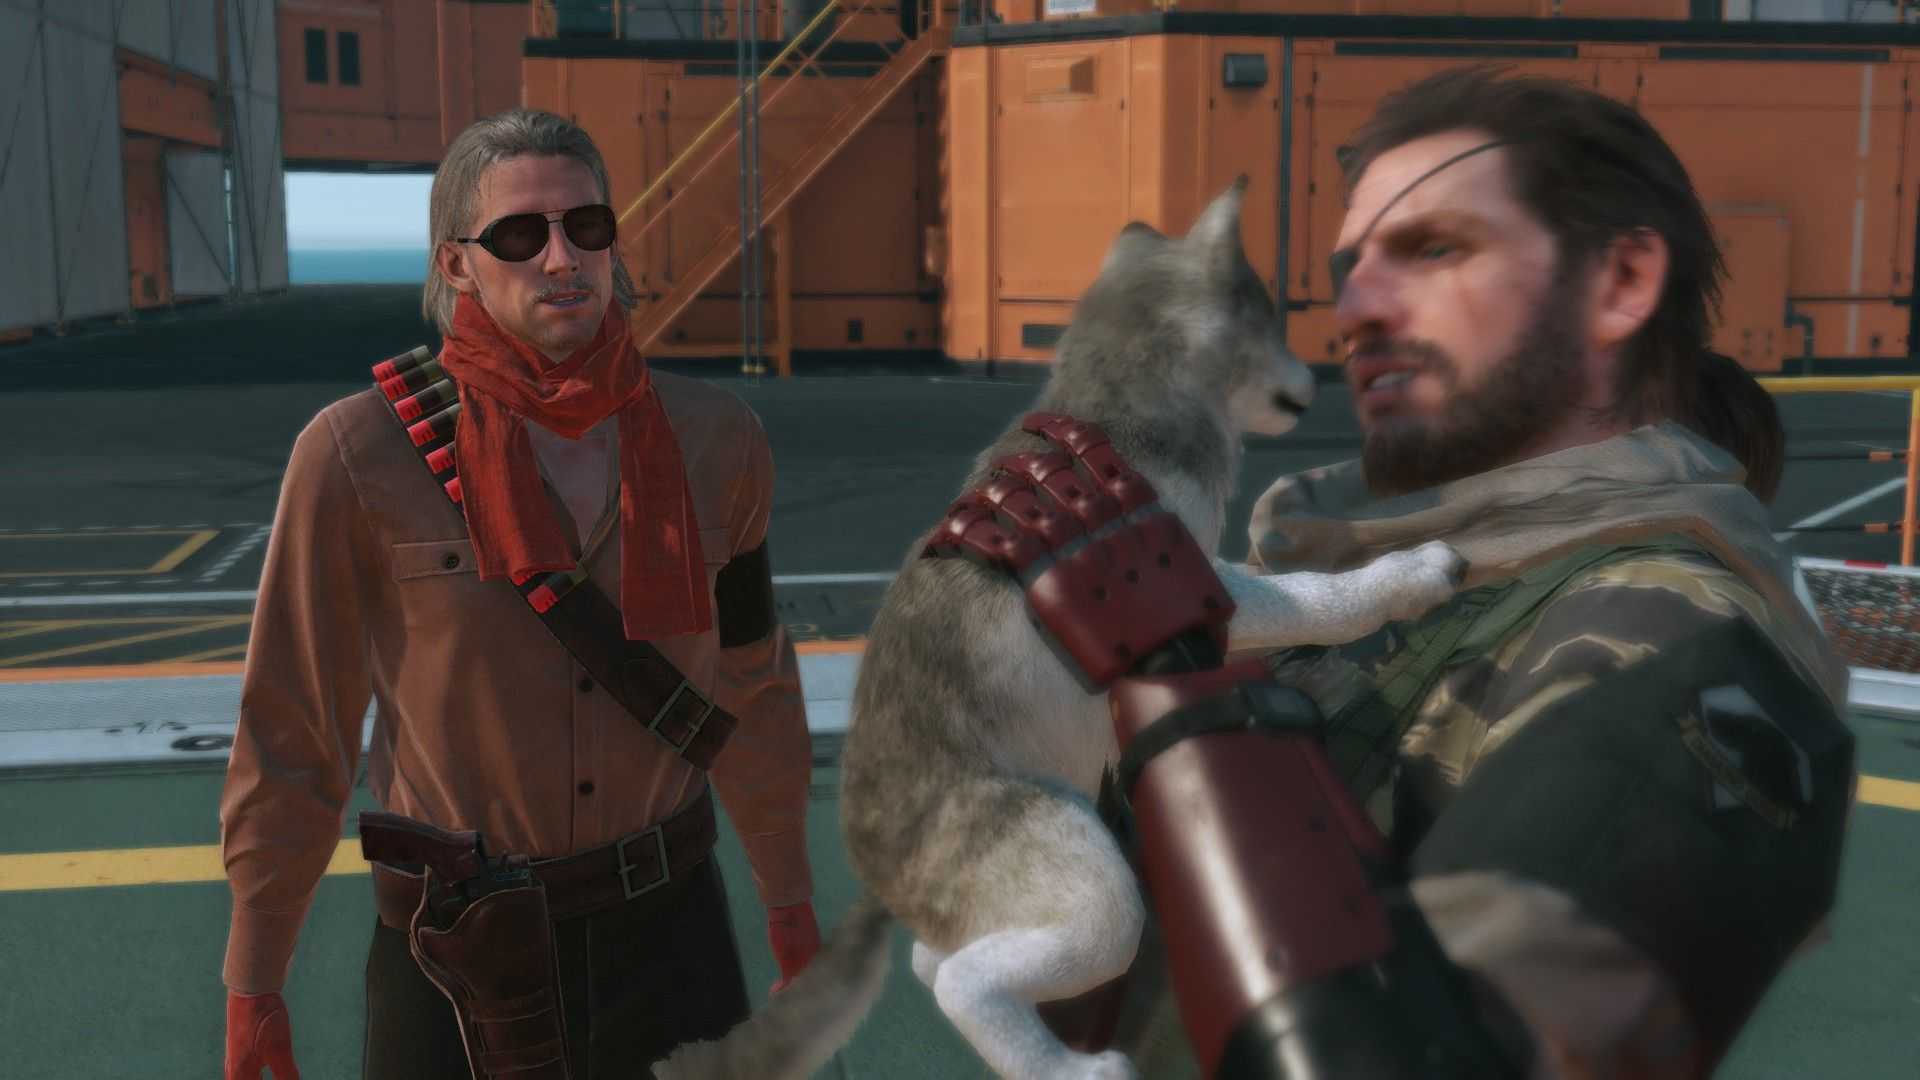 A screenshot from Metal Gear Solid 4 showing Solid Snake holding a puppy Diamond Dog - a scruffy little grey and white wolfy scrap. Snake looks very happy.